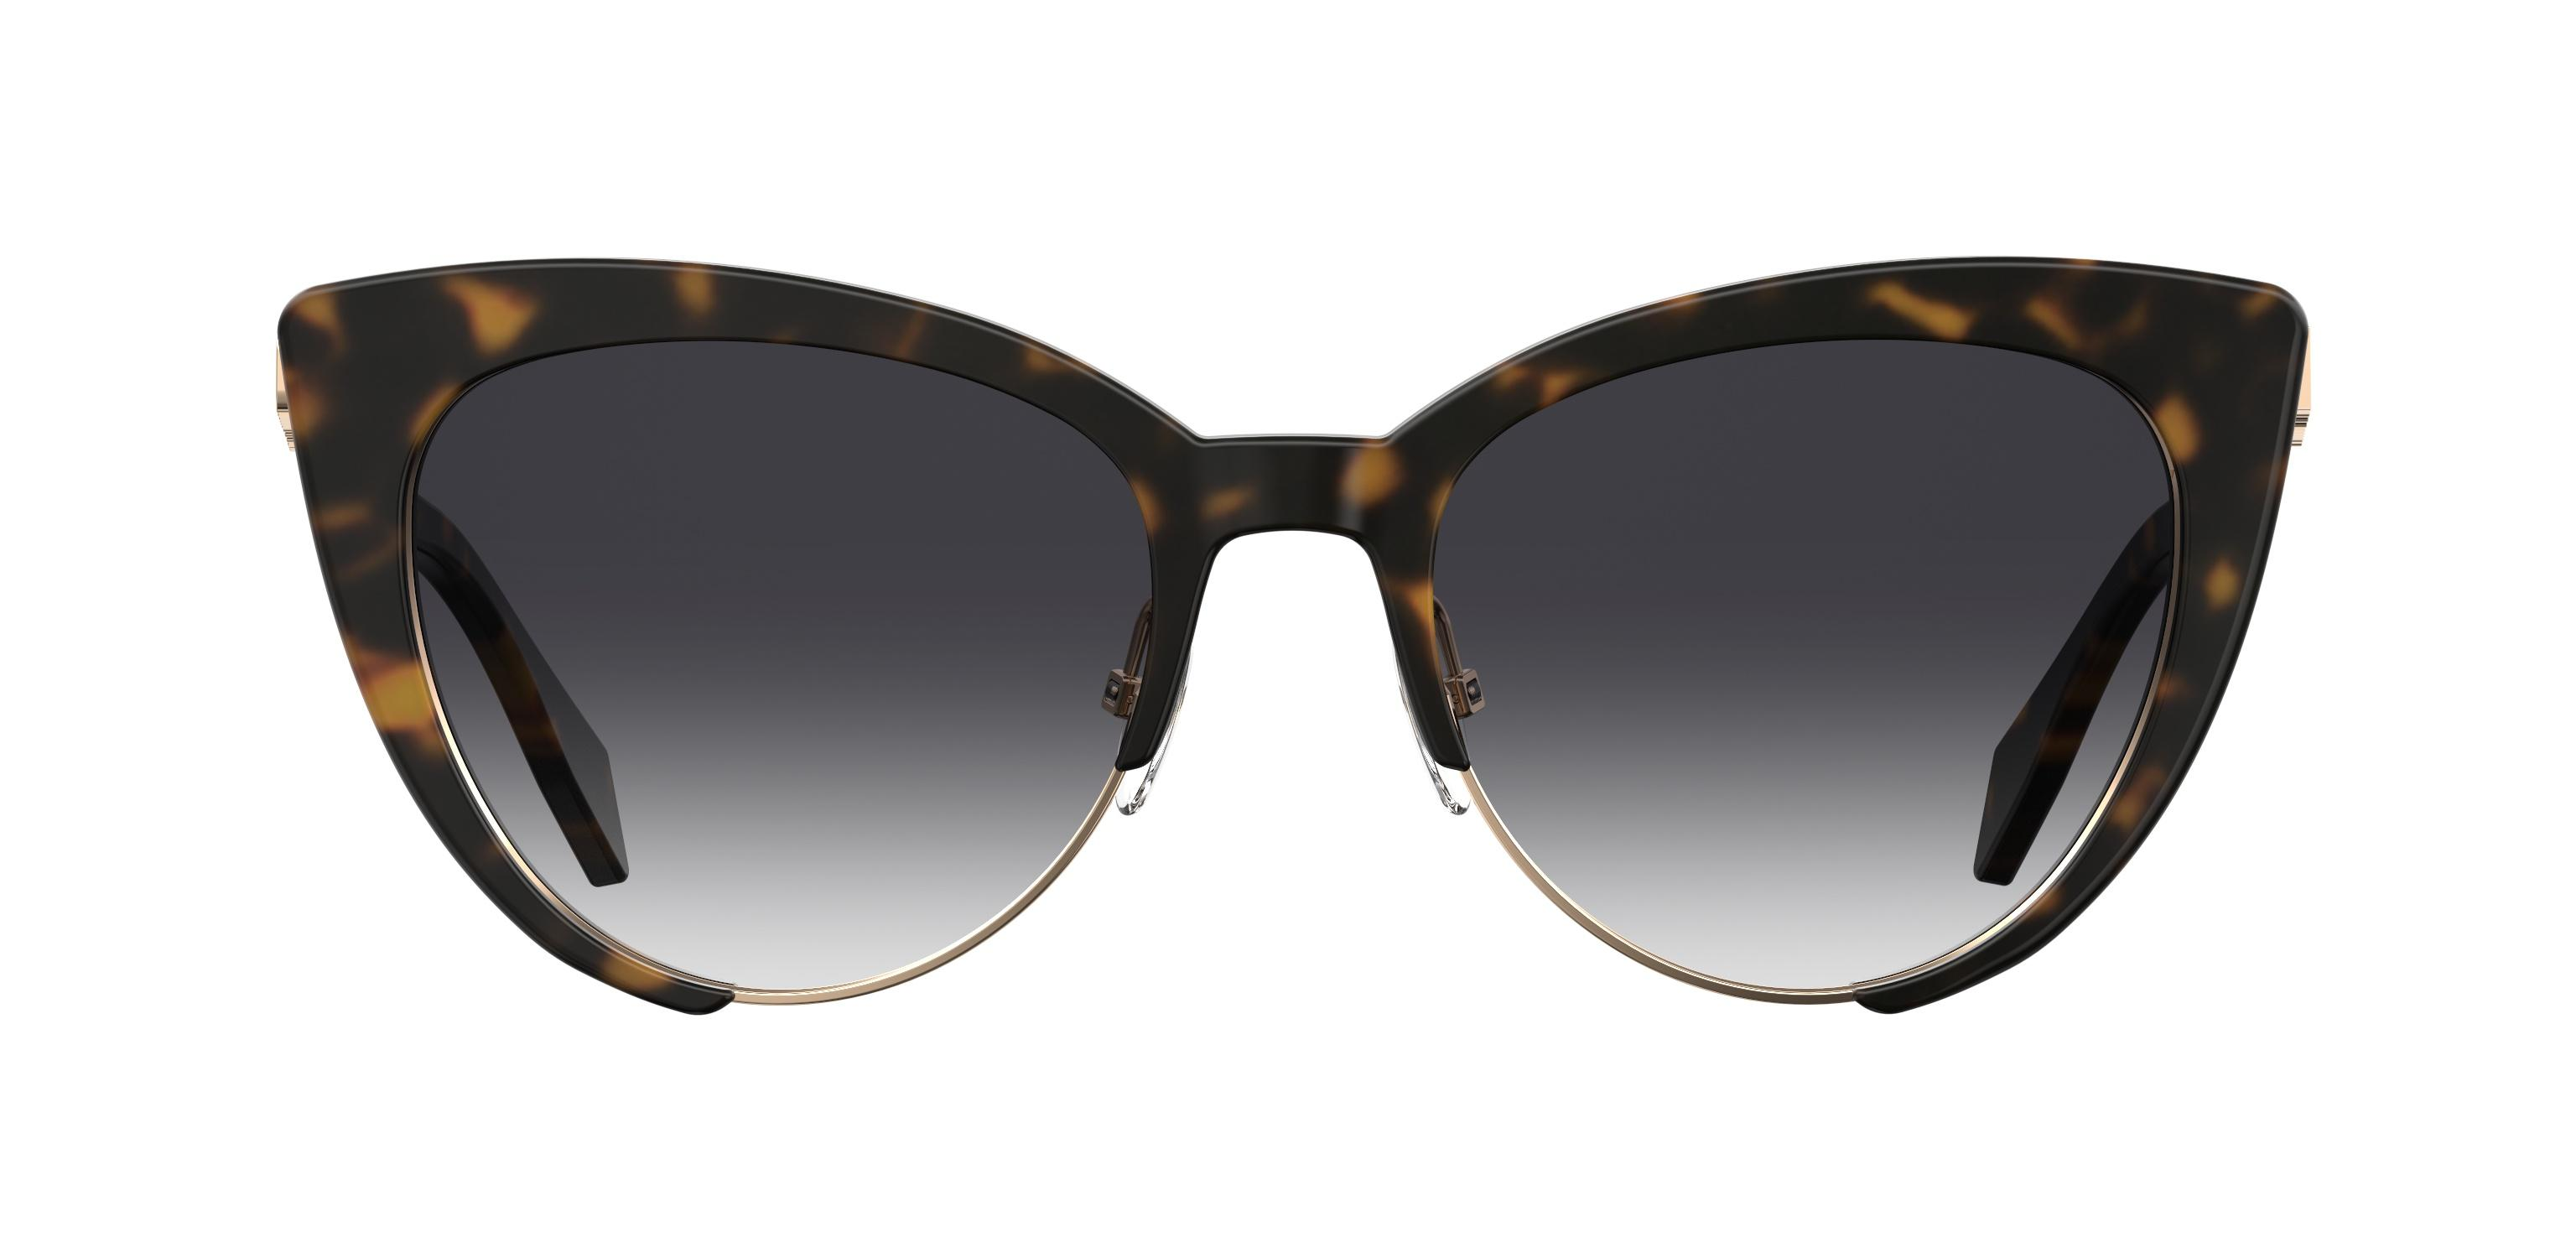 a4fcbb70d Lyst - Moschino Mos040/s Cateye Sunglasses in Brown